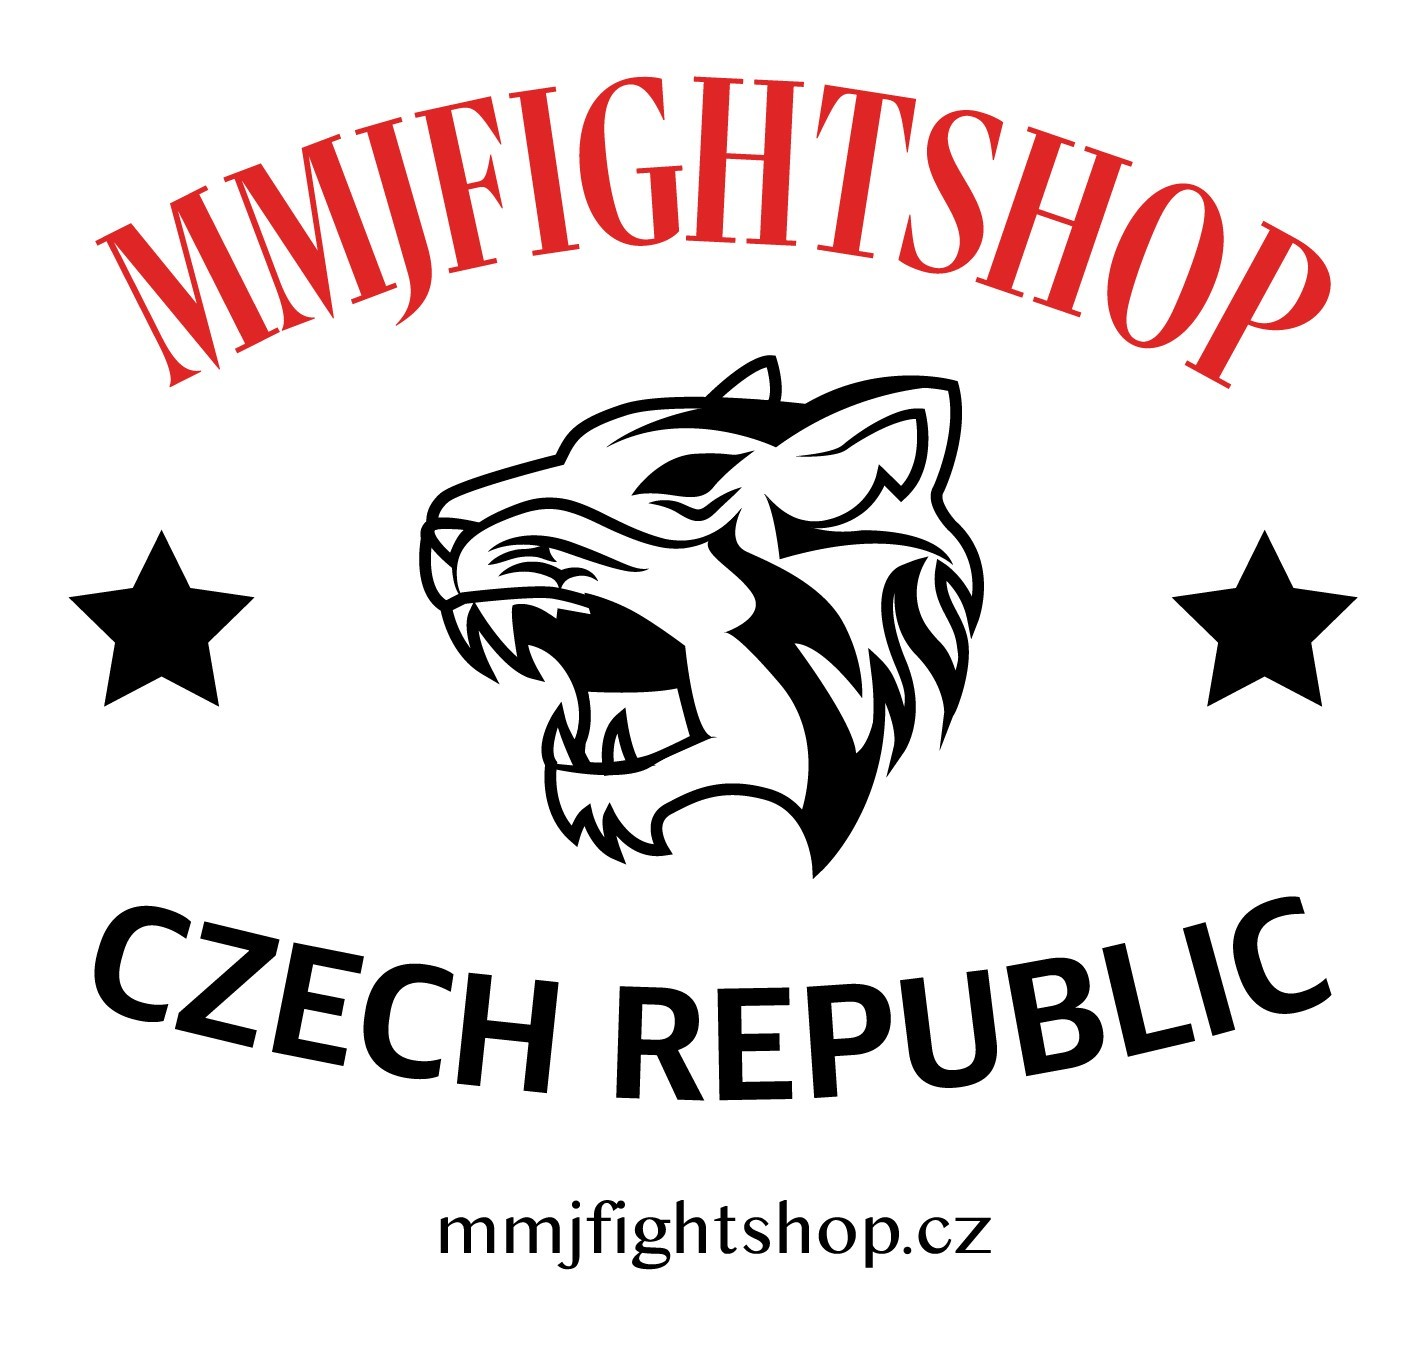 MMJFIGHTSHOP.CZ - EUROPEAN DEALER